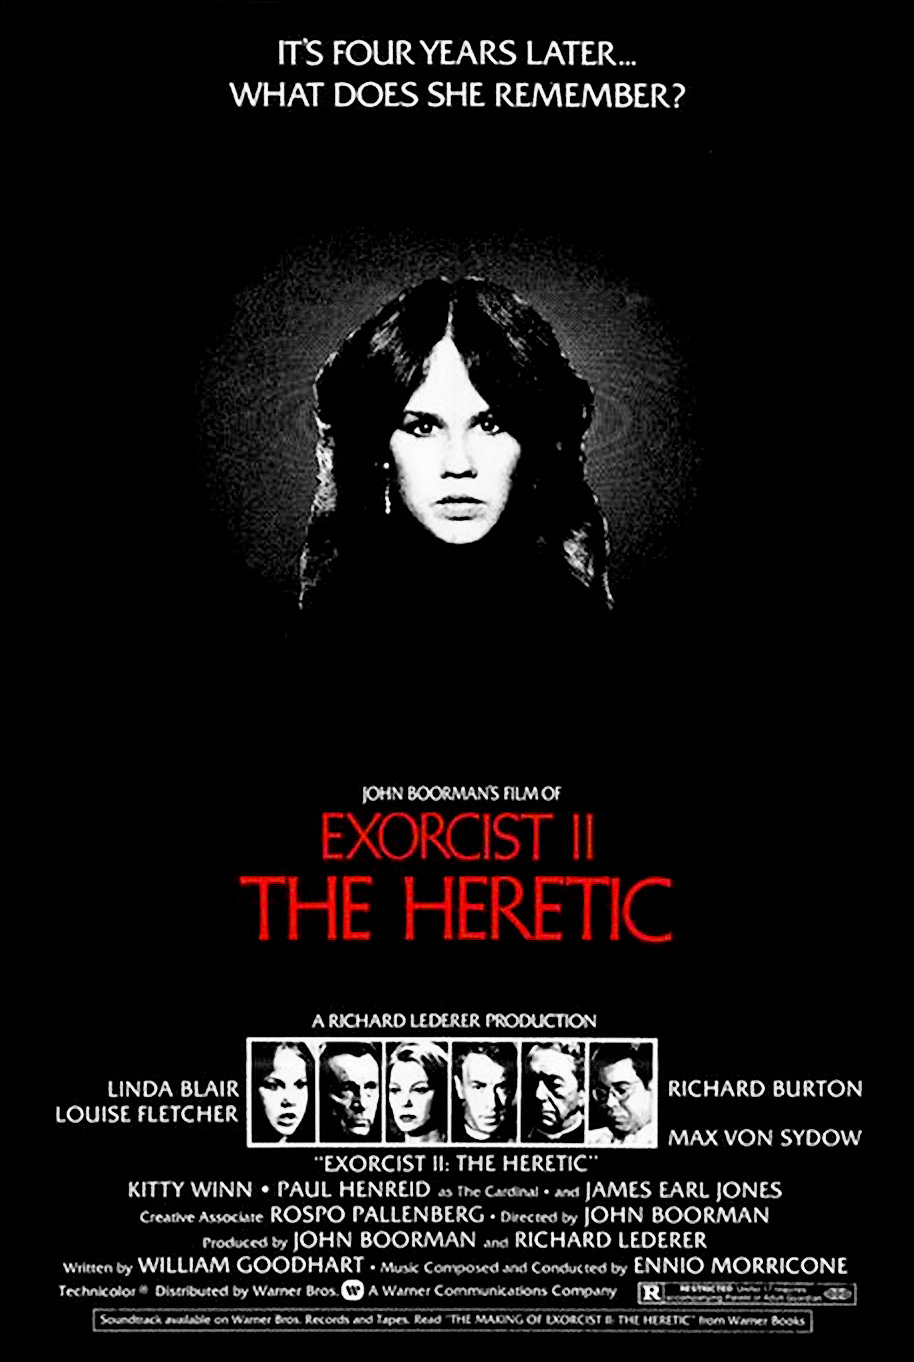 exorcist 2 the heretic 1977 - This Week in Horror Movie History - Exorcist II: The Heretic (1977)